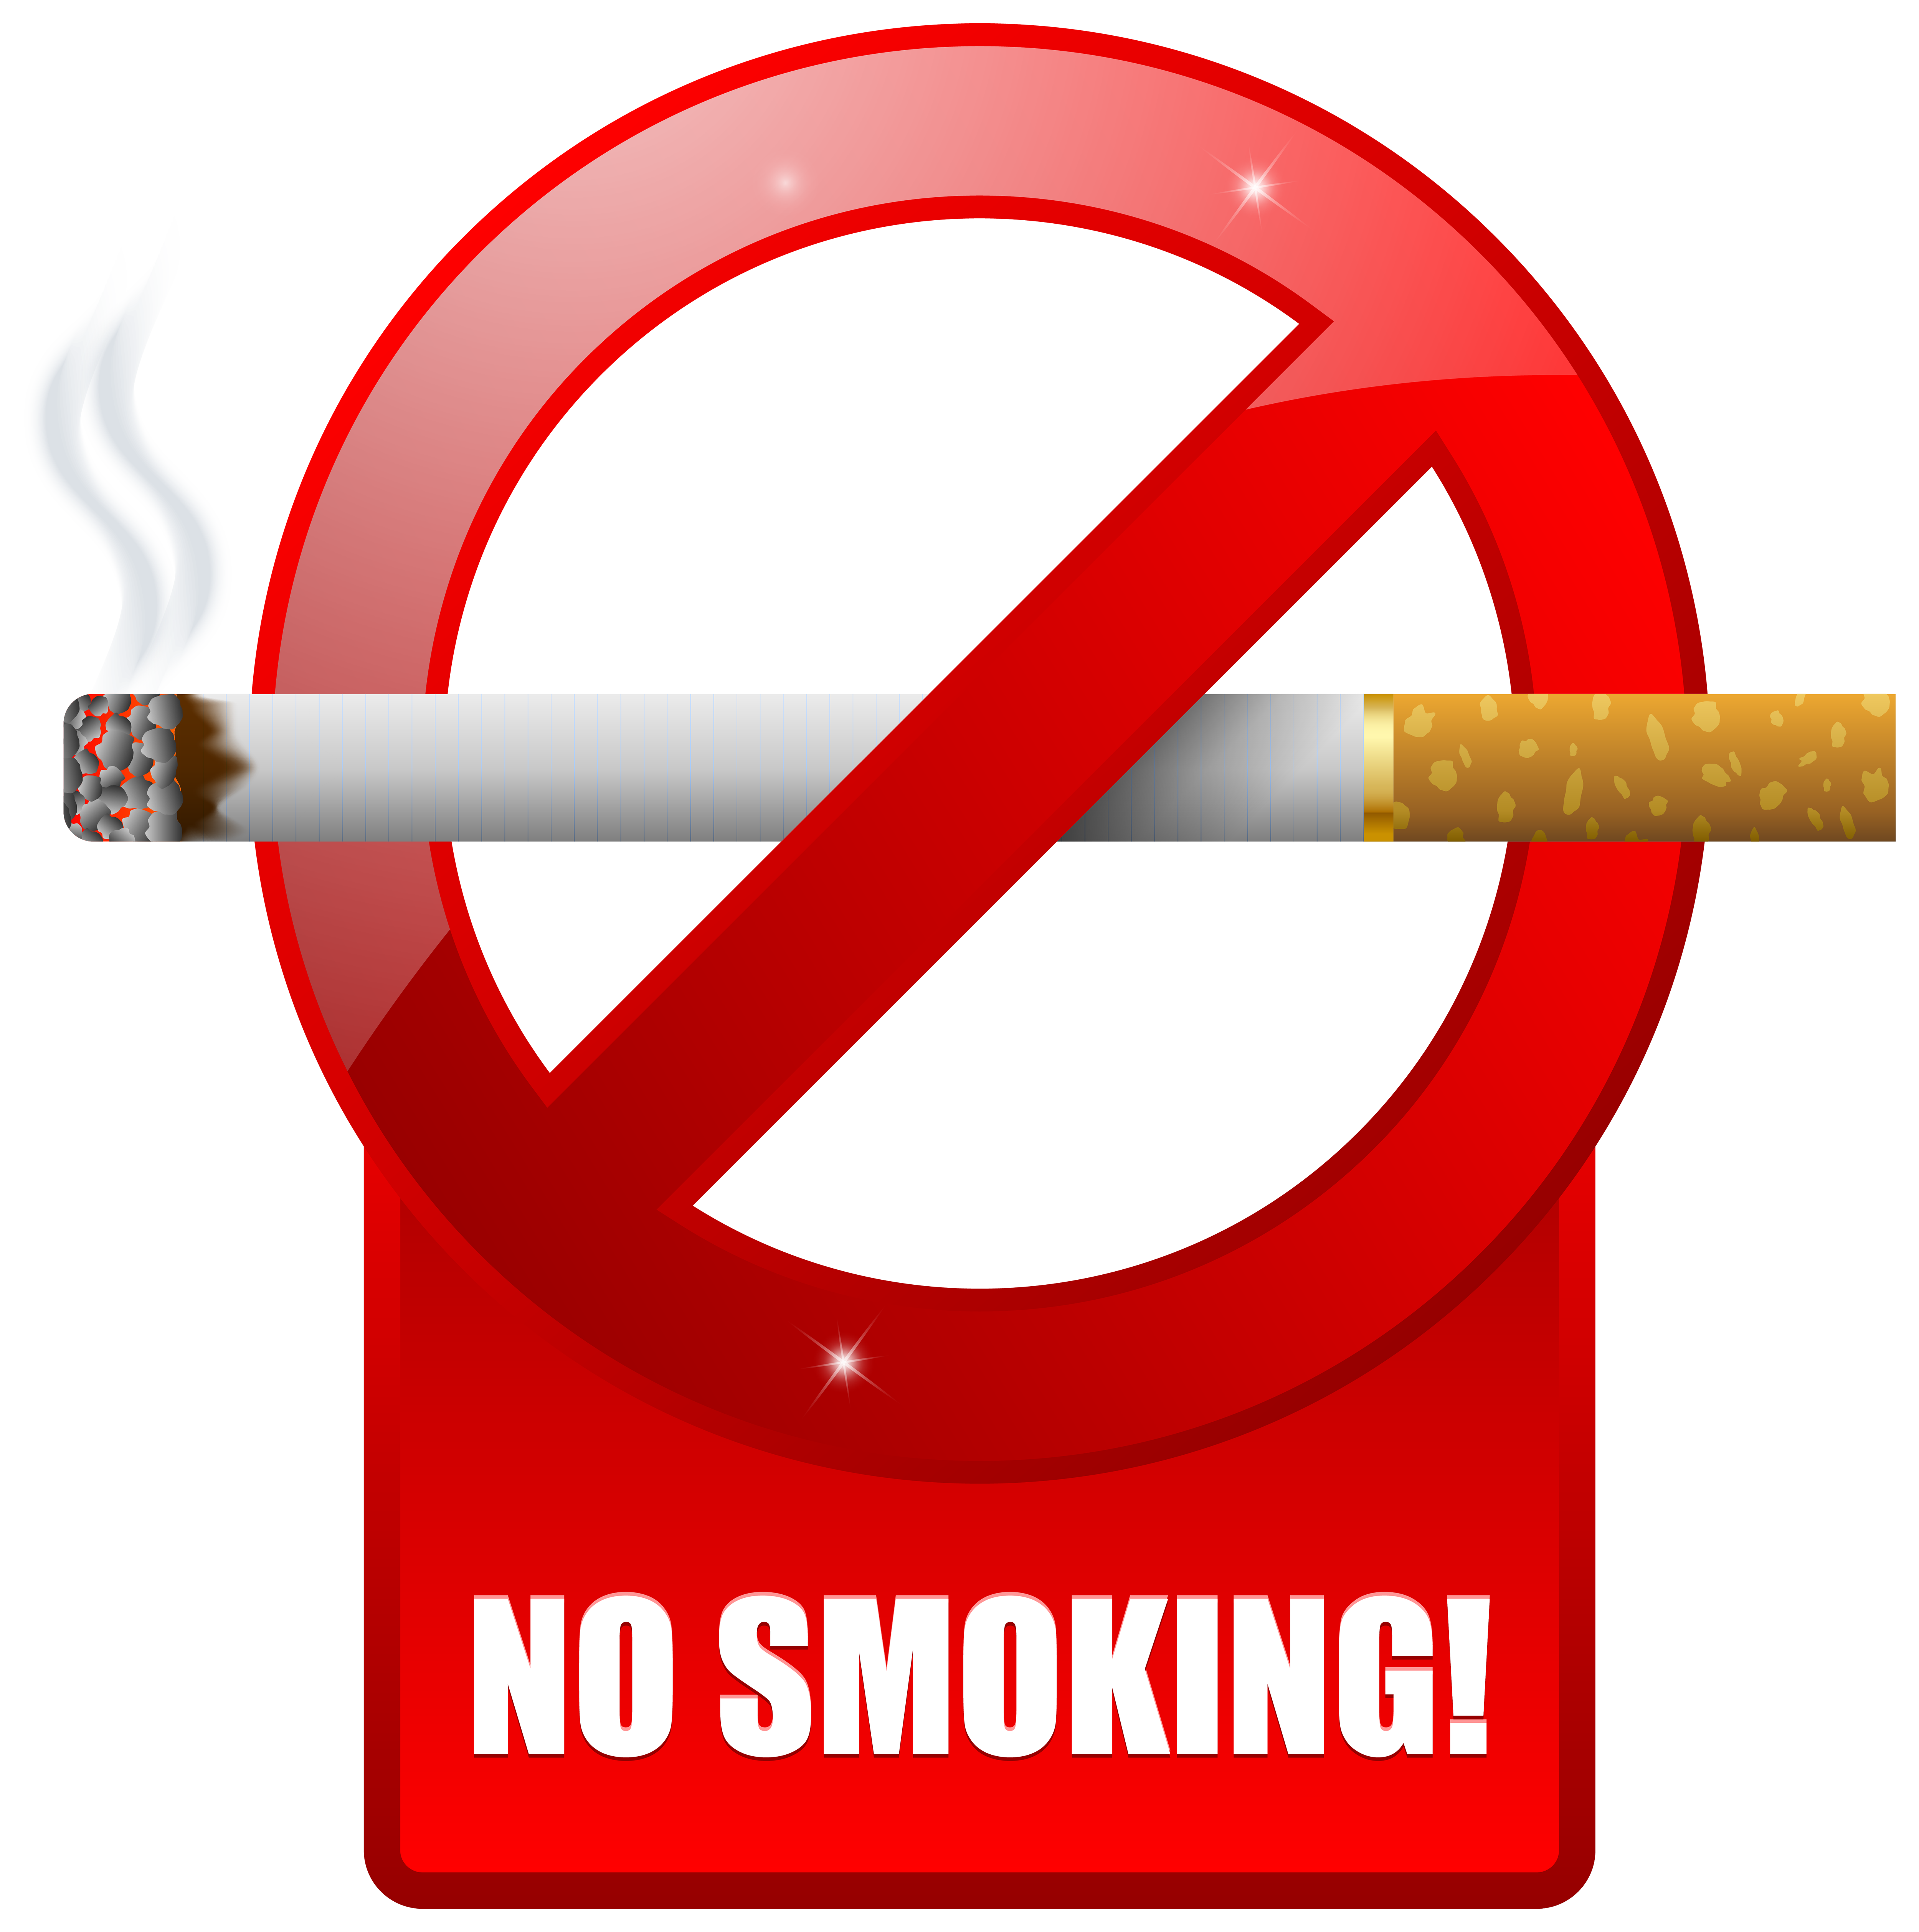 Smoking car clipart svg freeuse download No Smoking Warning Sign PNG Clipart - Best WEB Clipart svg freeuse download